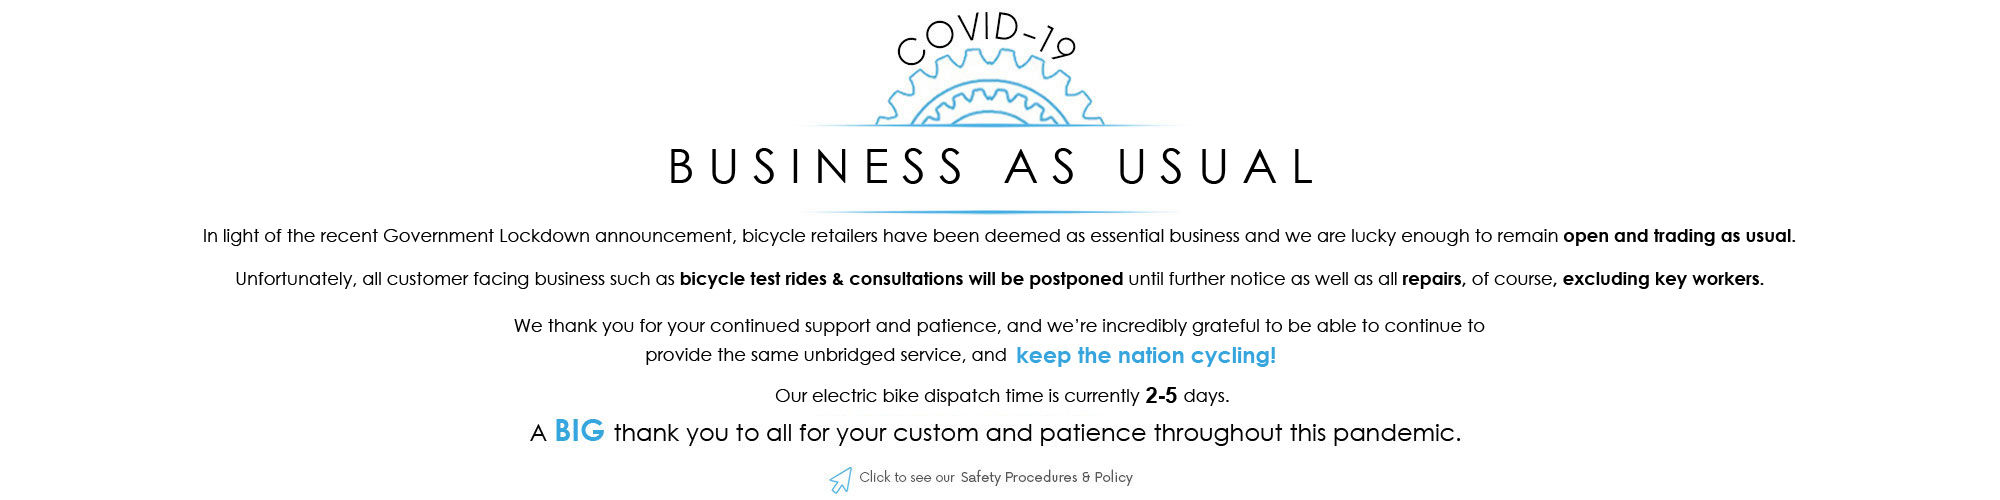 Covid-19 Policy & Proceedures at E-Bikes Direct